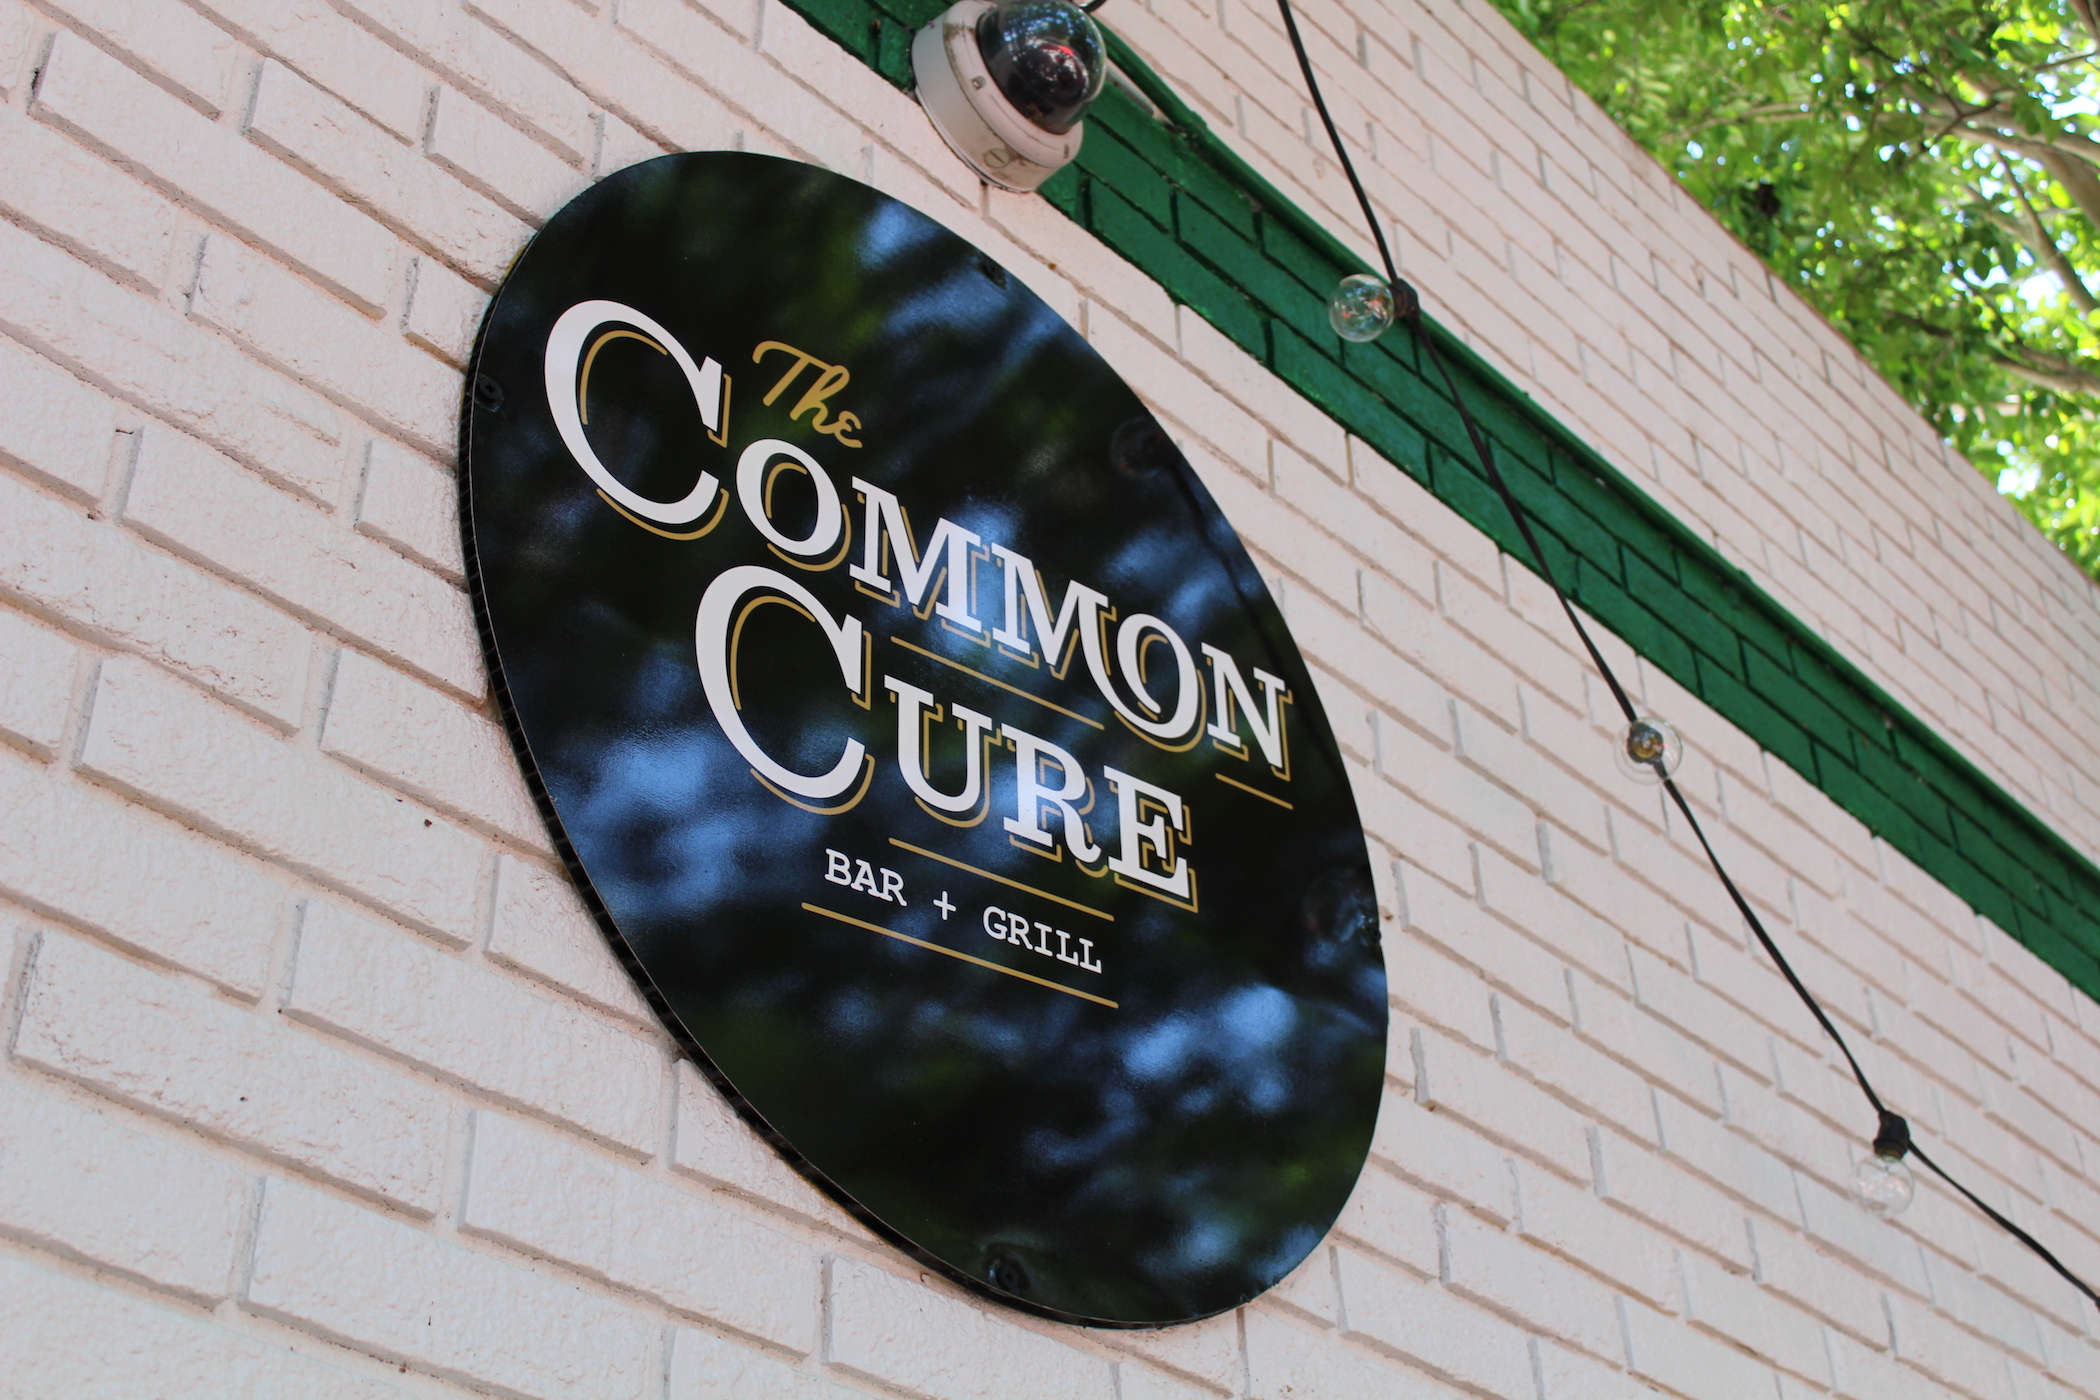 Exterior wall sign for the restaurant shows the logo in white and gold on a black circular sign, painted white brick with a painted green stripe, designed by Russell Shaw.